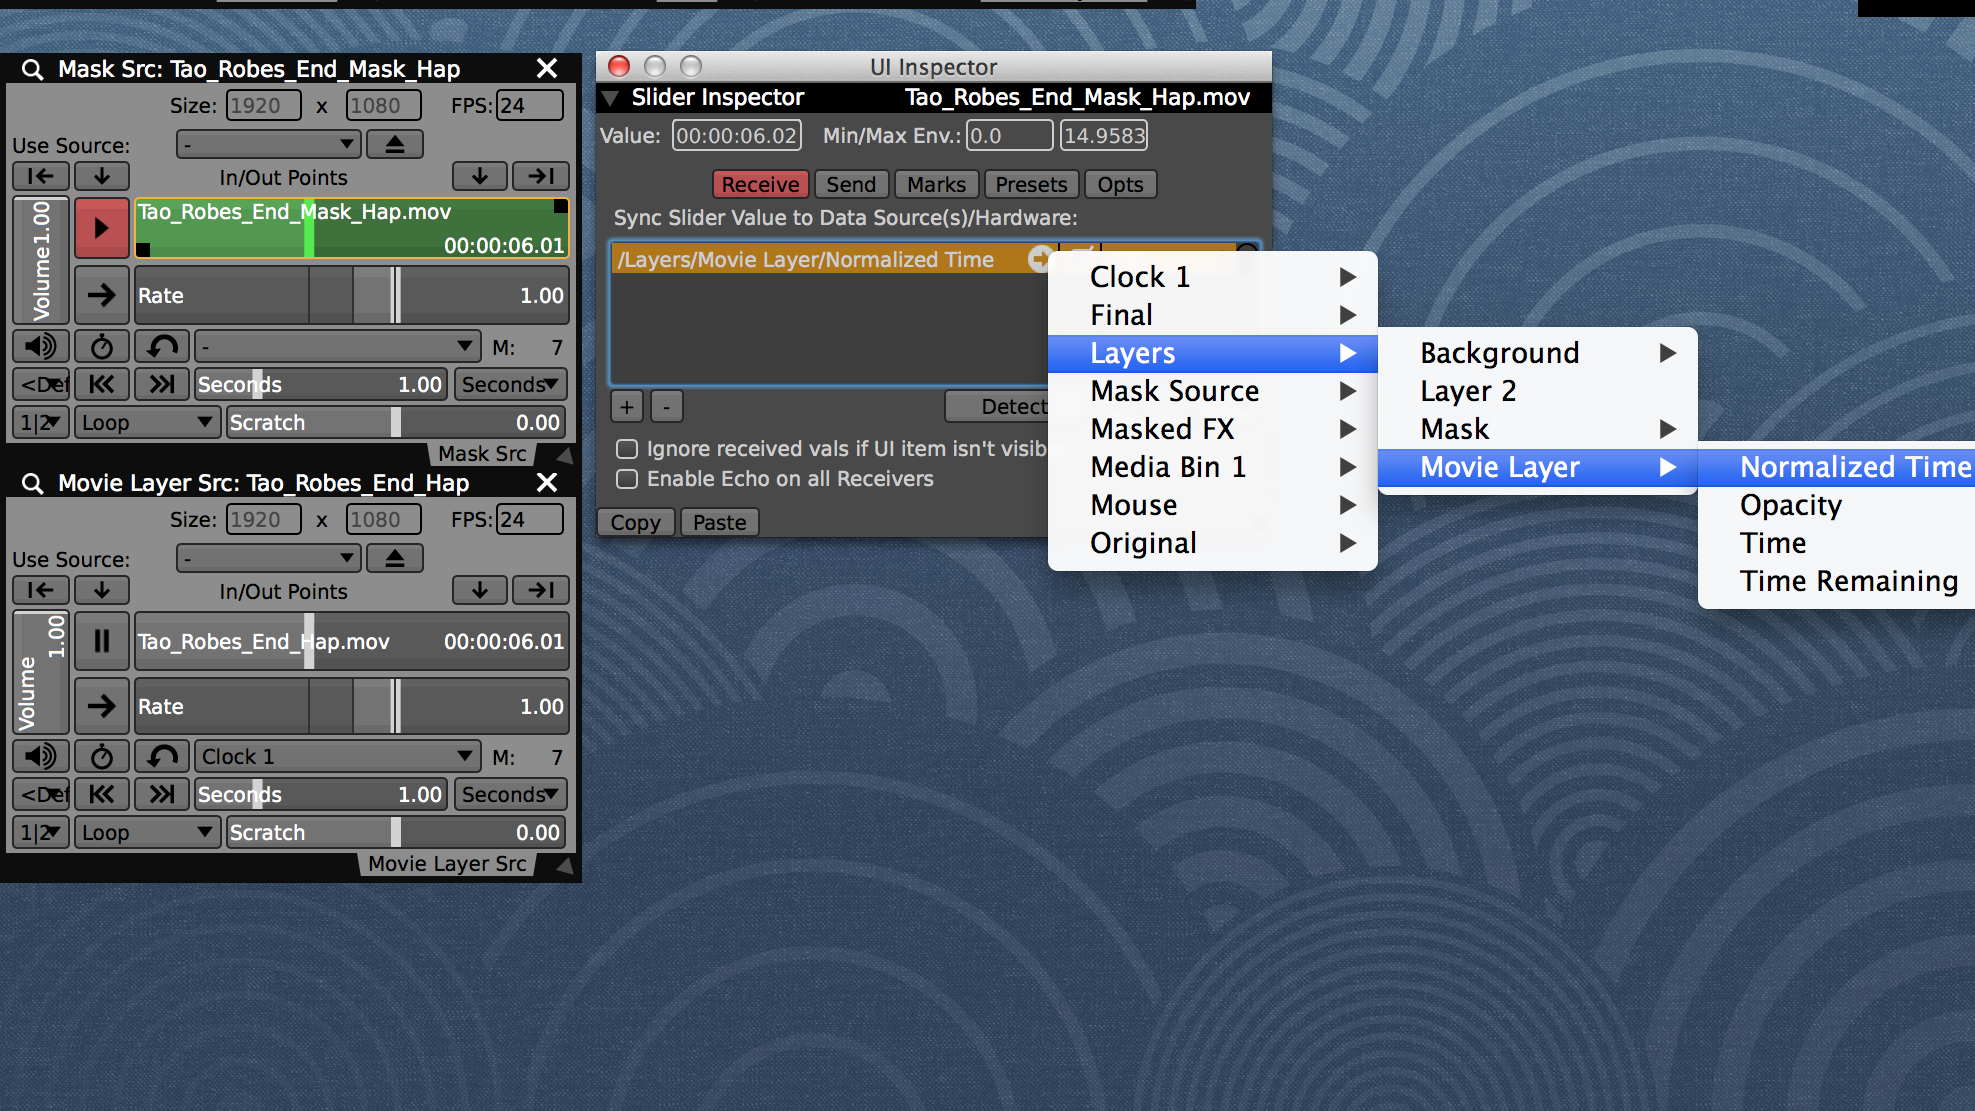 Sync the playhead of the masking layer source to the movie layer time.